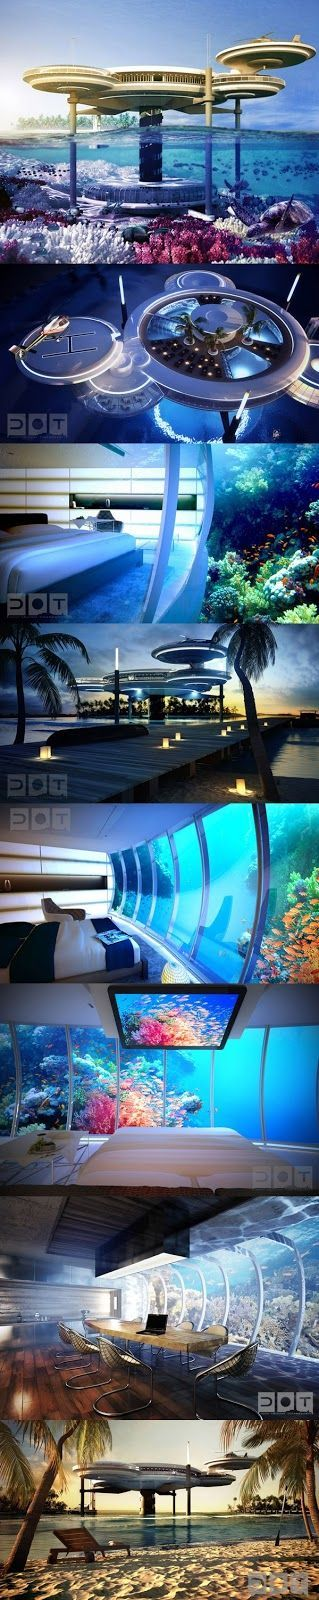 Water Discus Hotel, Dubai, United Arab Emirates(10 Pics) | See More Pictures | #SeeMorePictures #dubai #uae  http://dubaiuae.co/DubaiTravelHotels | @༺♥༻LadyLuxury༺♥༻